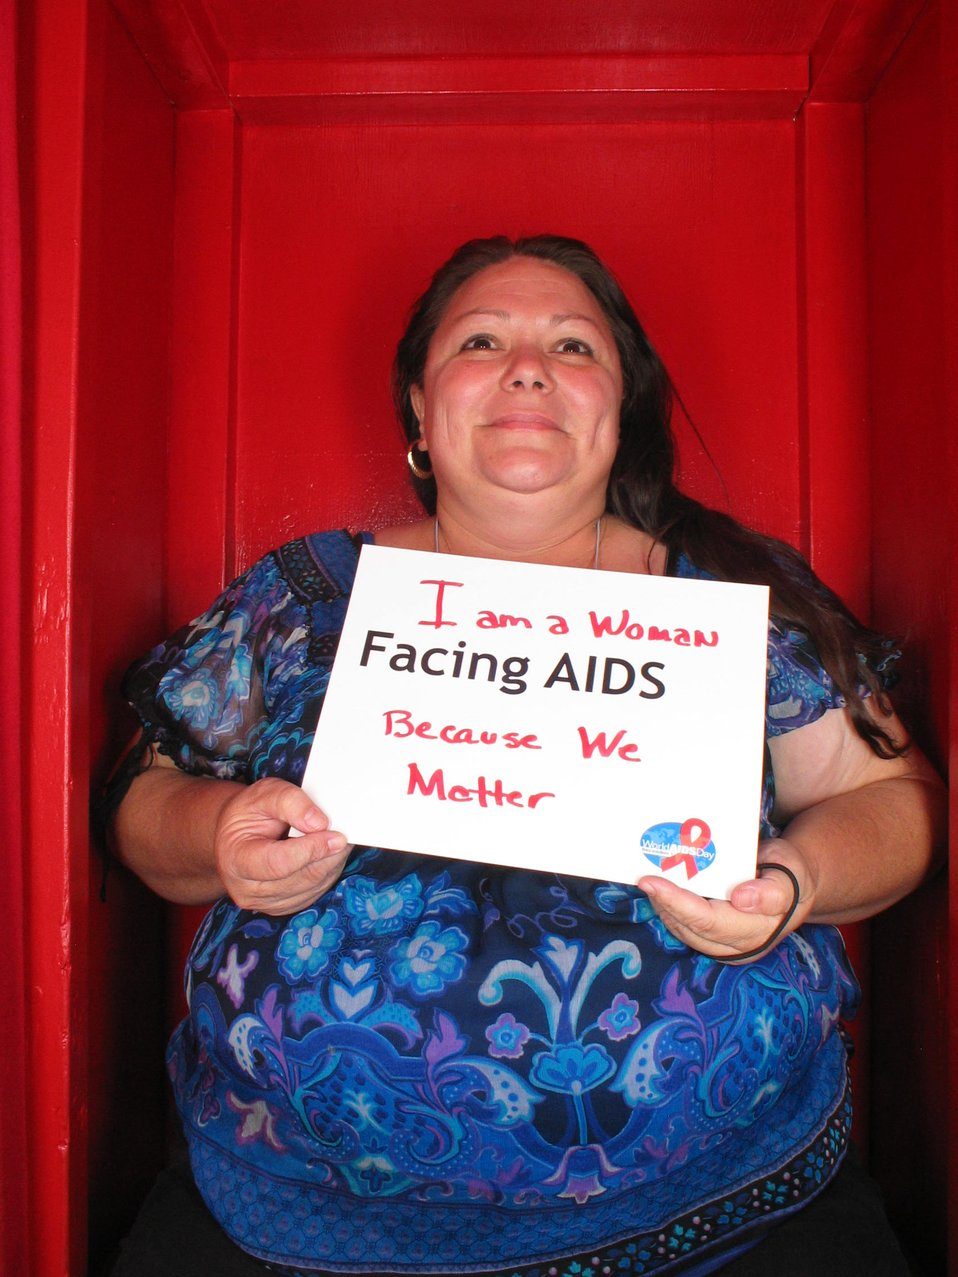 I am a woman Facing AIDS because we matter.